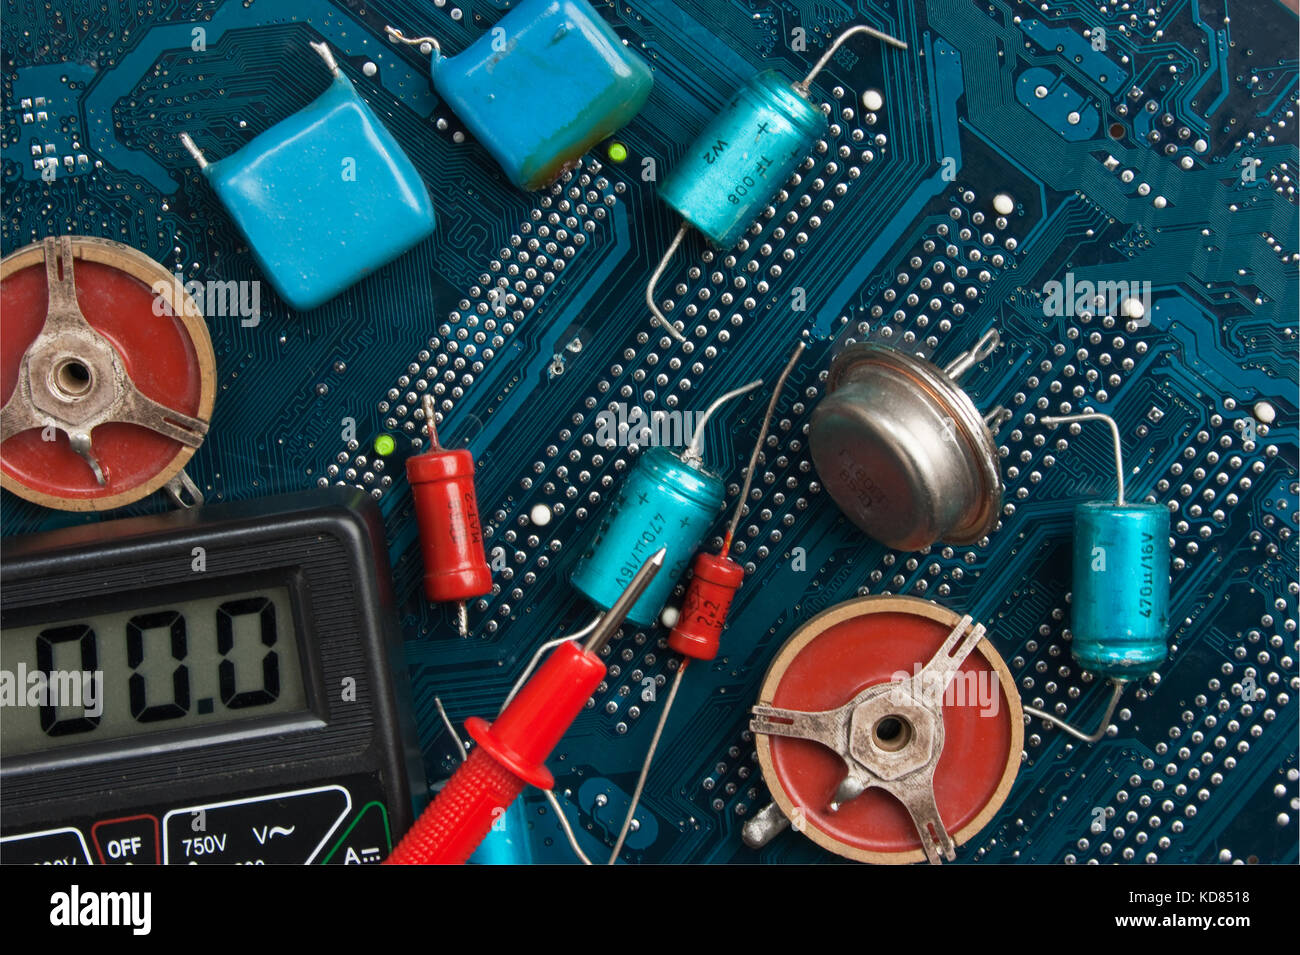 Old Electronic Components On Printed Circuit Board Stock Photo Part Of Vintage Analog With